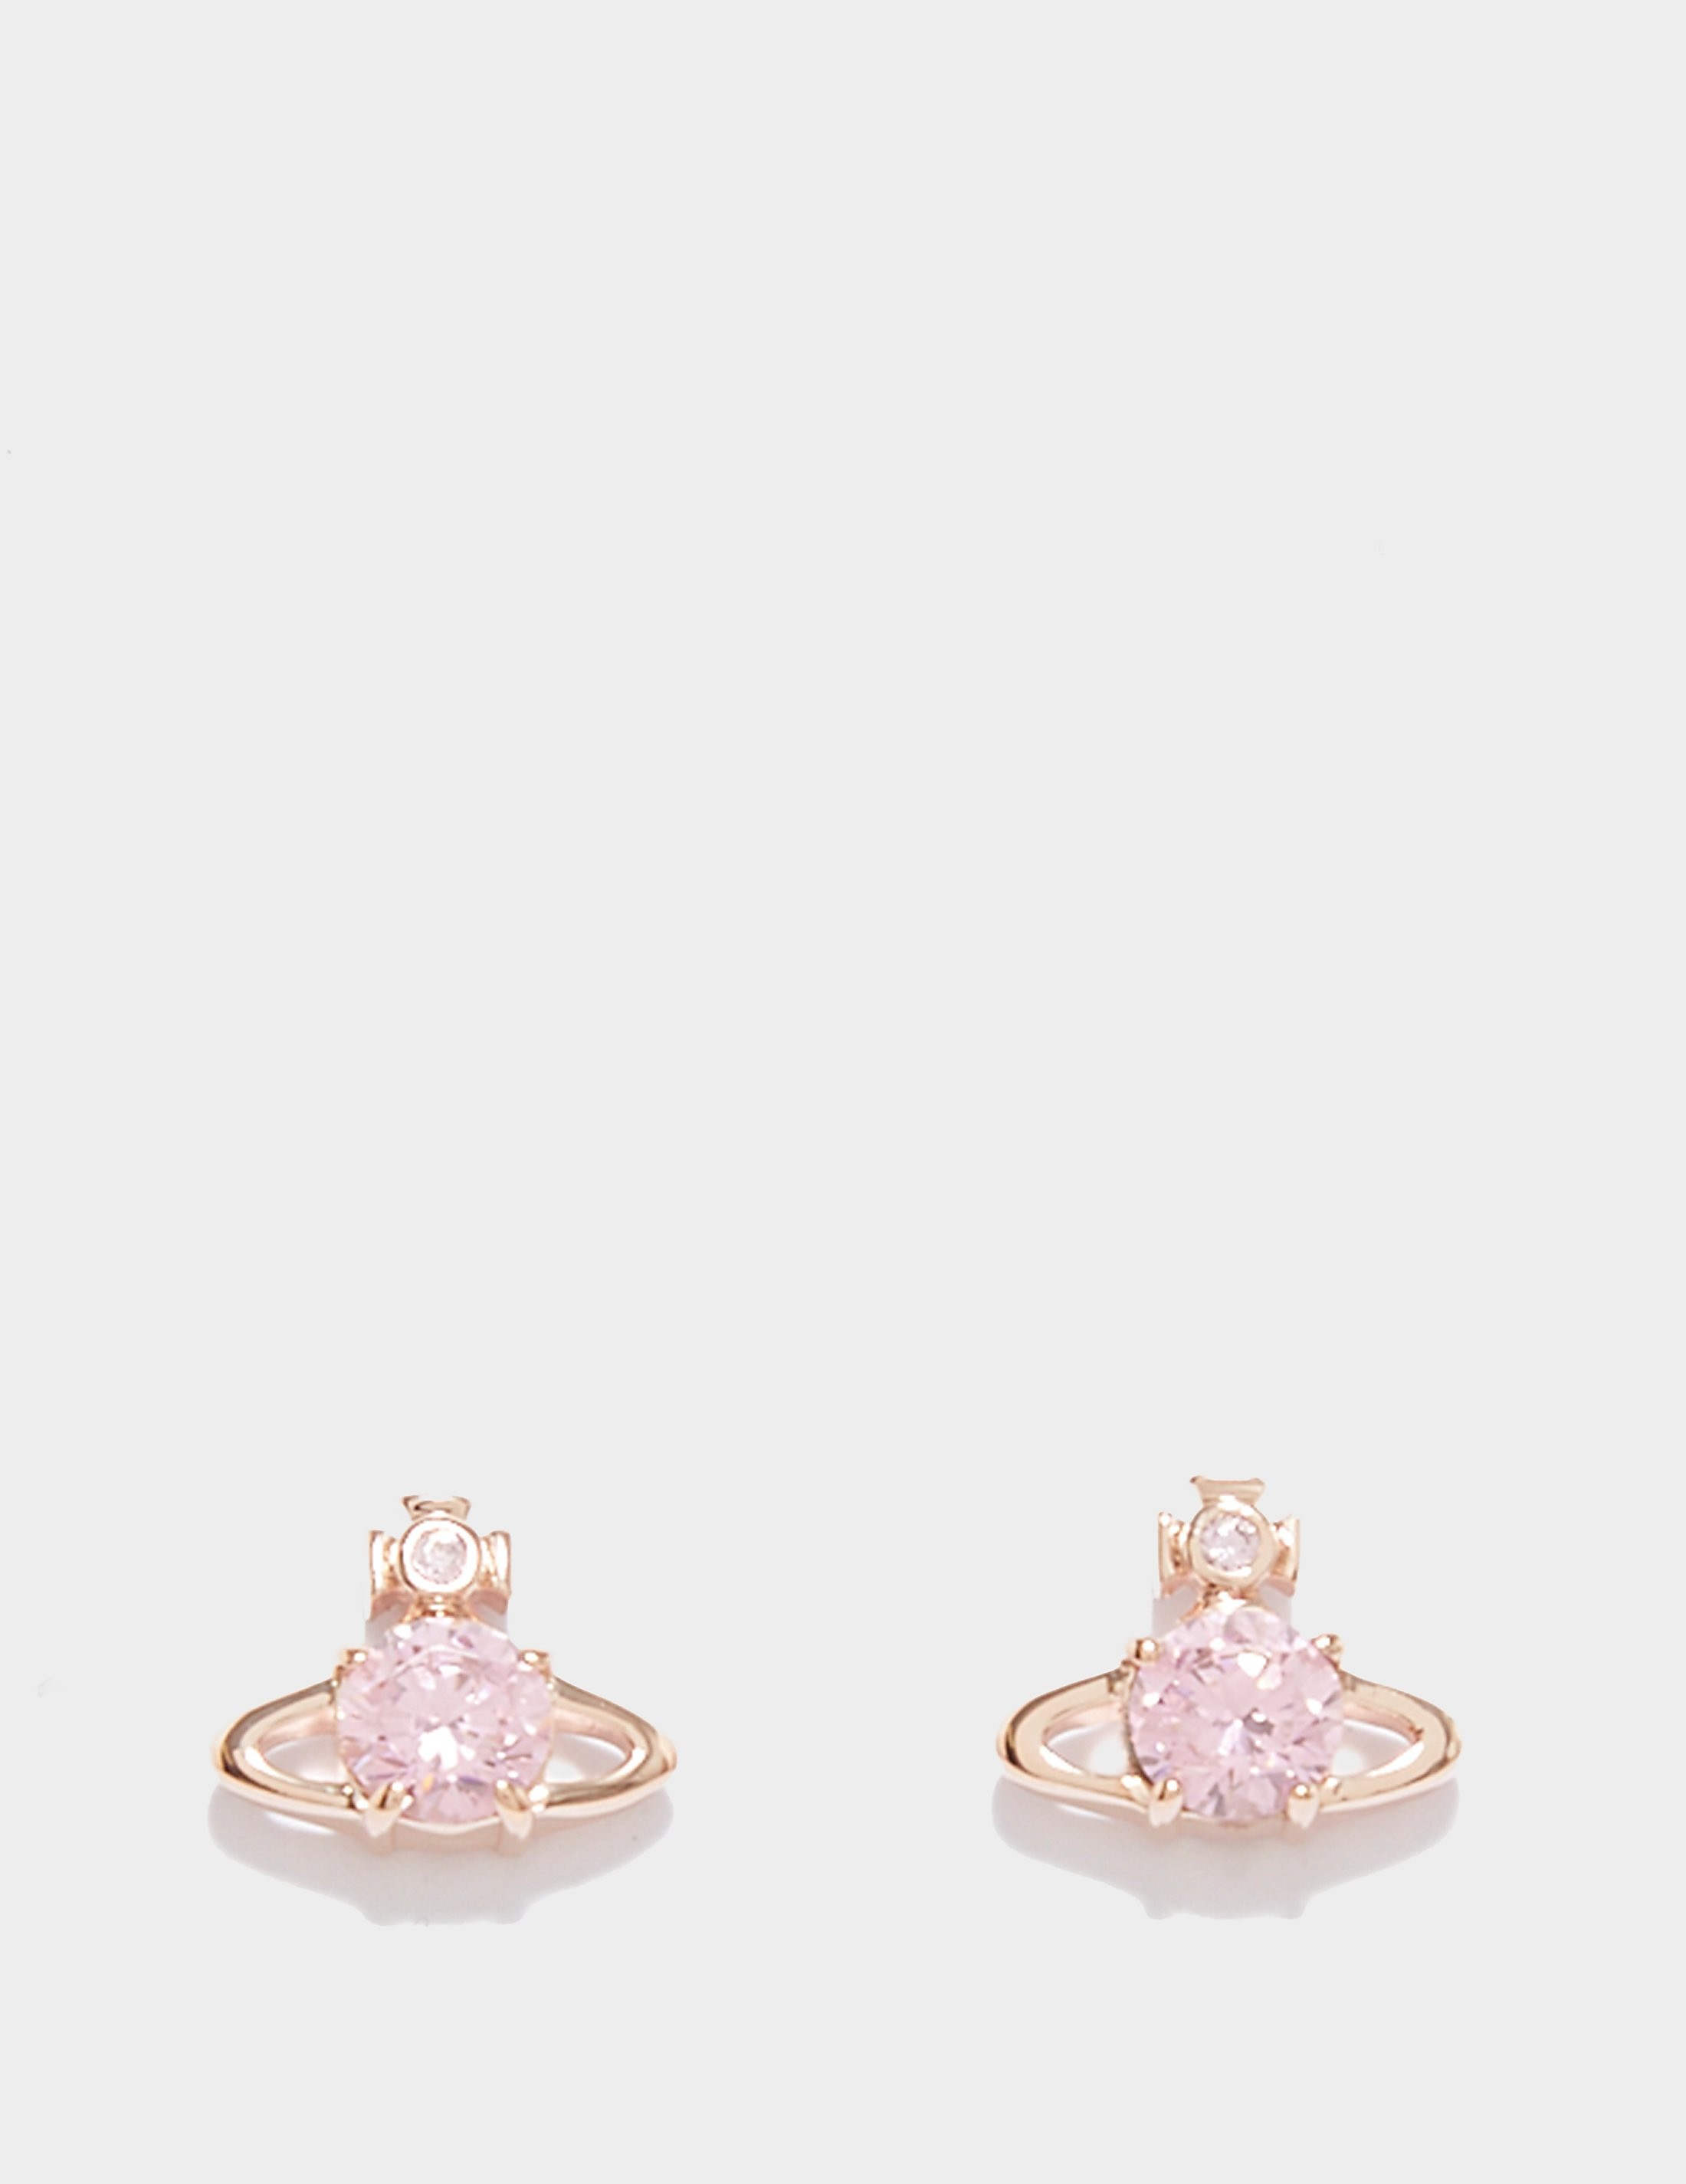 Vivienne Westwood Reina Earrings